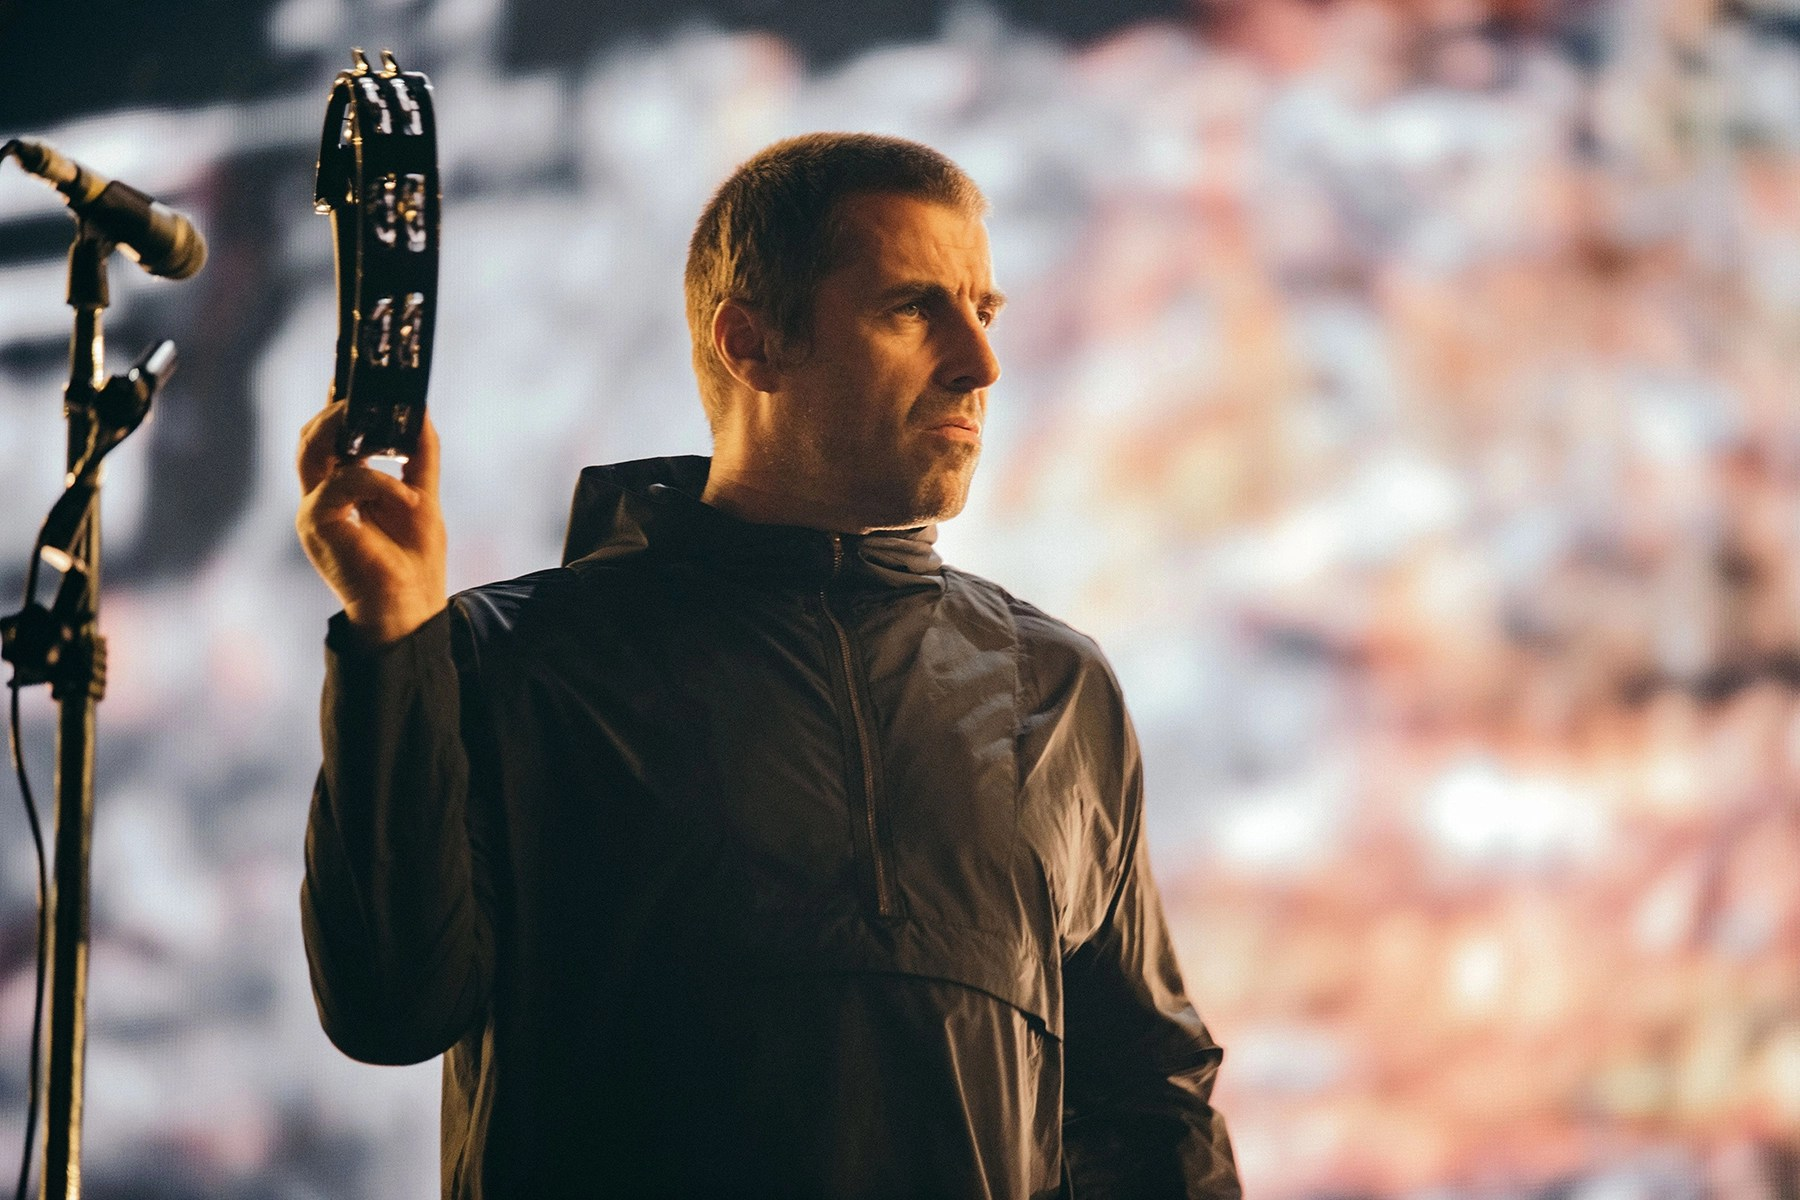 02/08/2021· liam gallagher, 48, and his fiancée debbie gwyther, 38, enjoyed dinner at scott's in mayfair on sunday, two weeks after liam's youngest son gene, 20, was ordered to stand trial. Liam Gallagher to Play Free Concert for British Healthcare ...